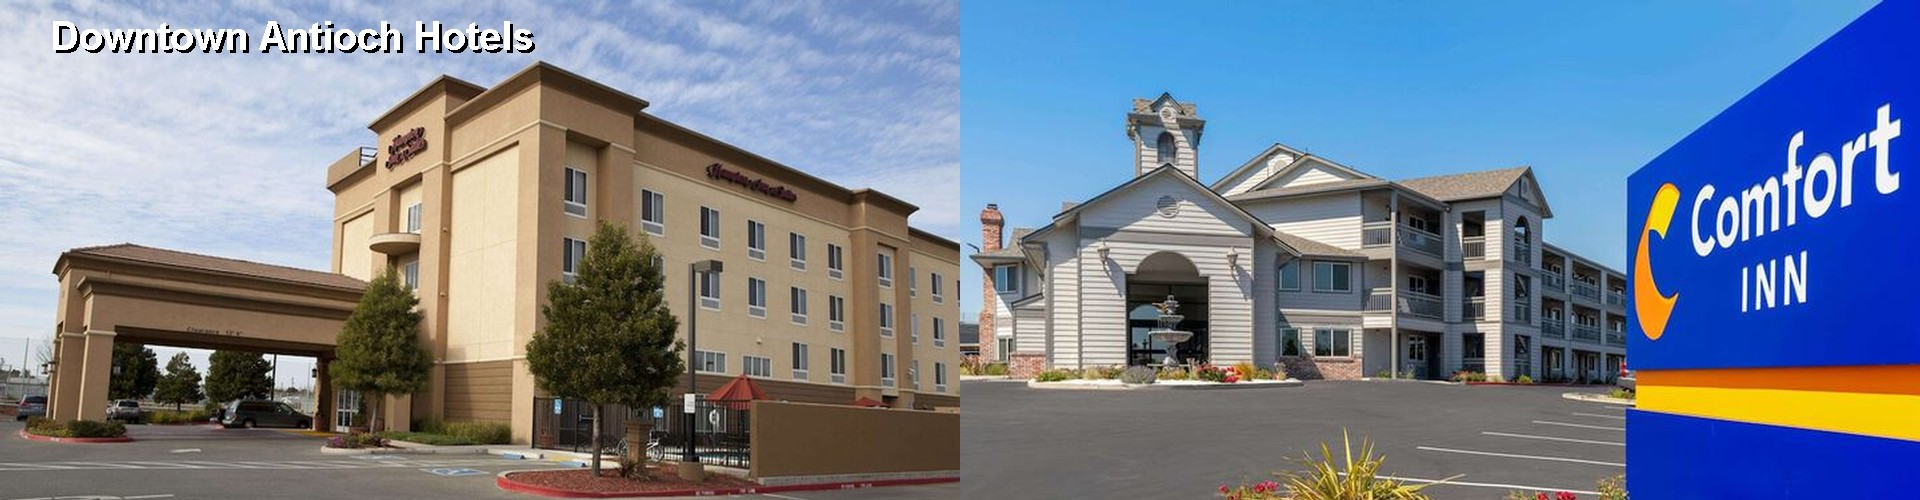 5 Best Hotels near Downtown Antioch